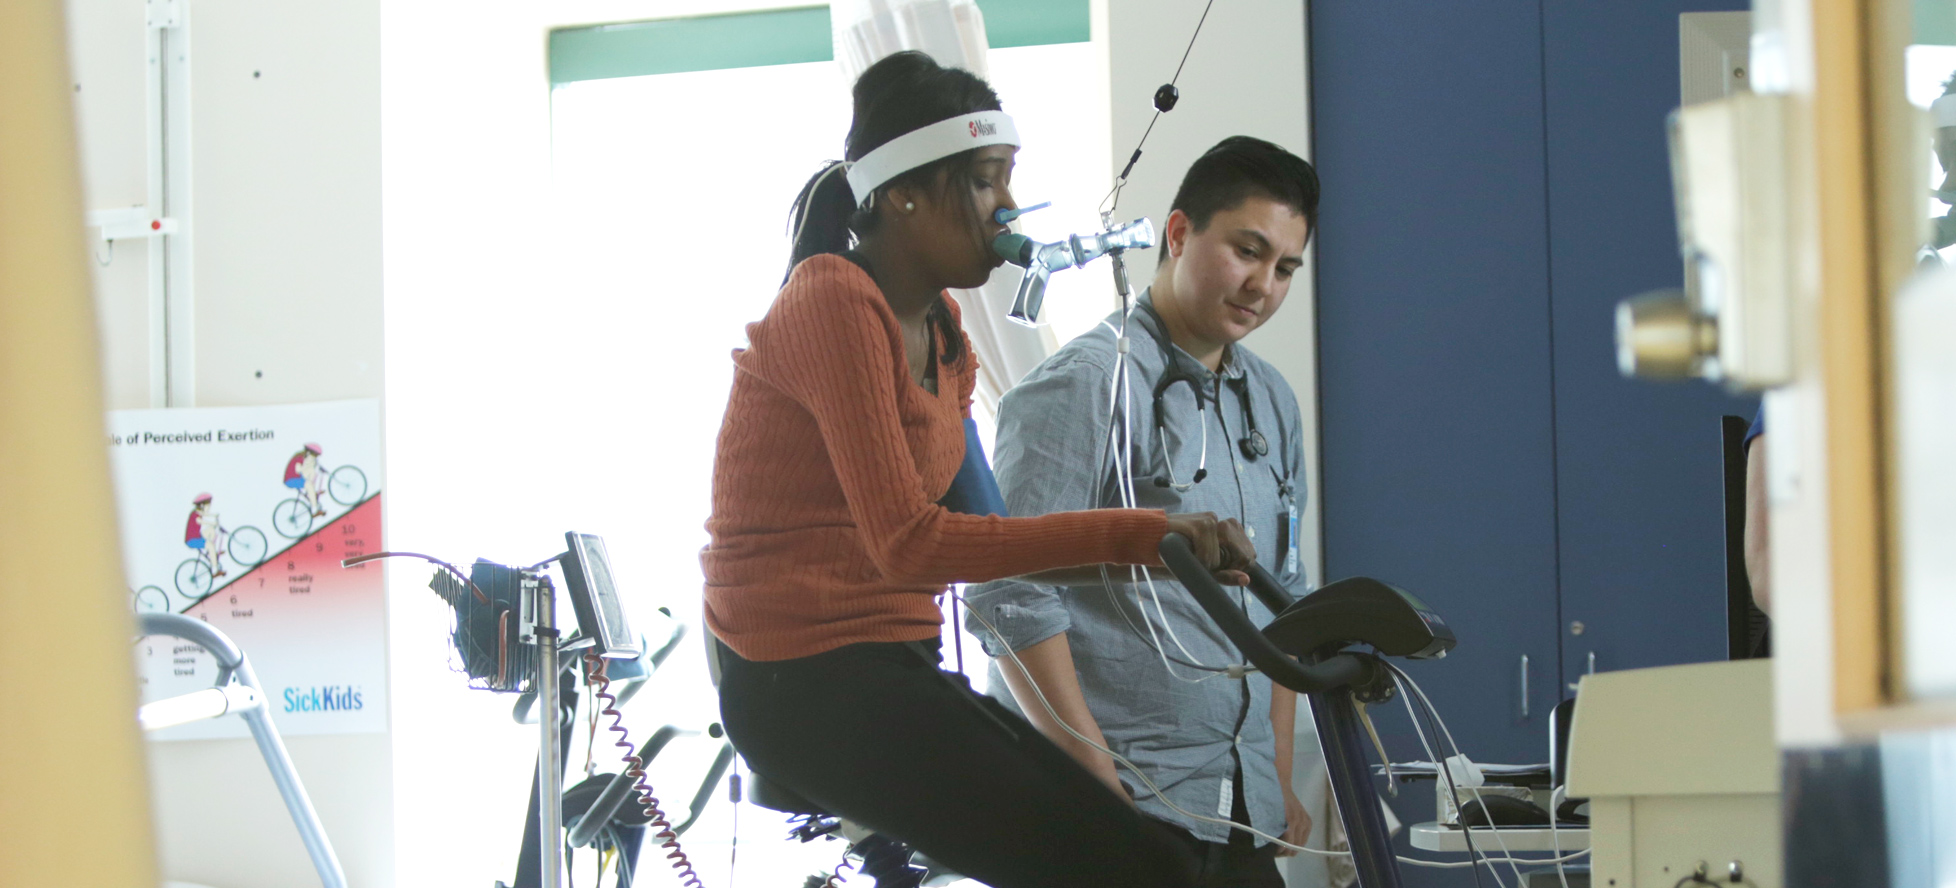 female teenage patient with breathing apparatus on stationary bike